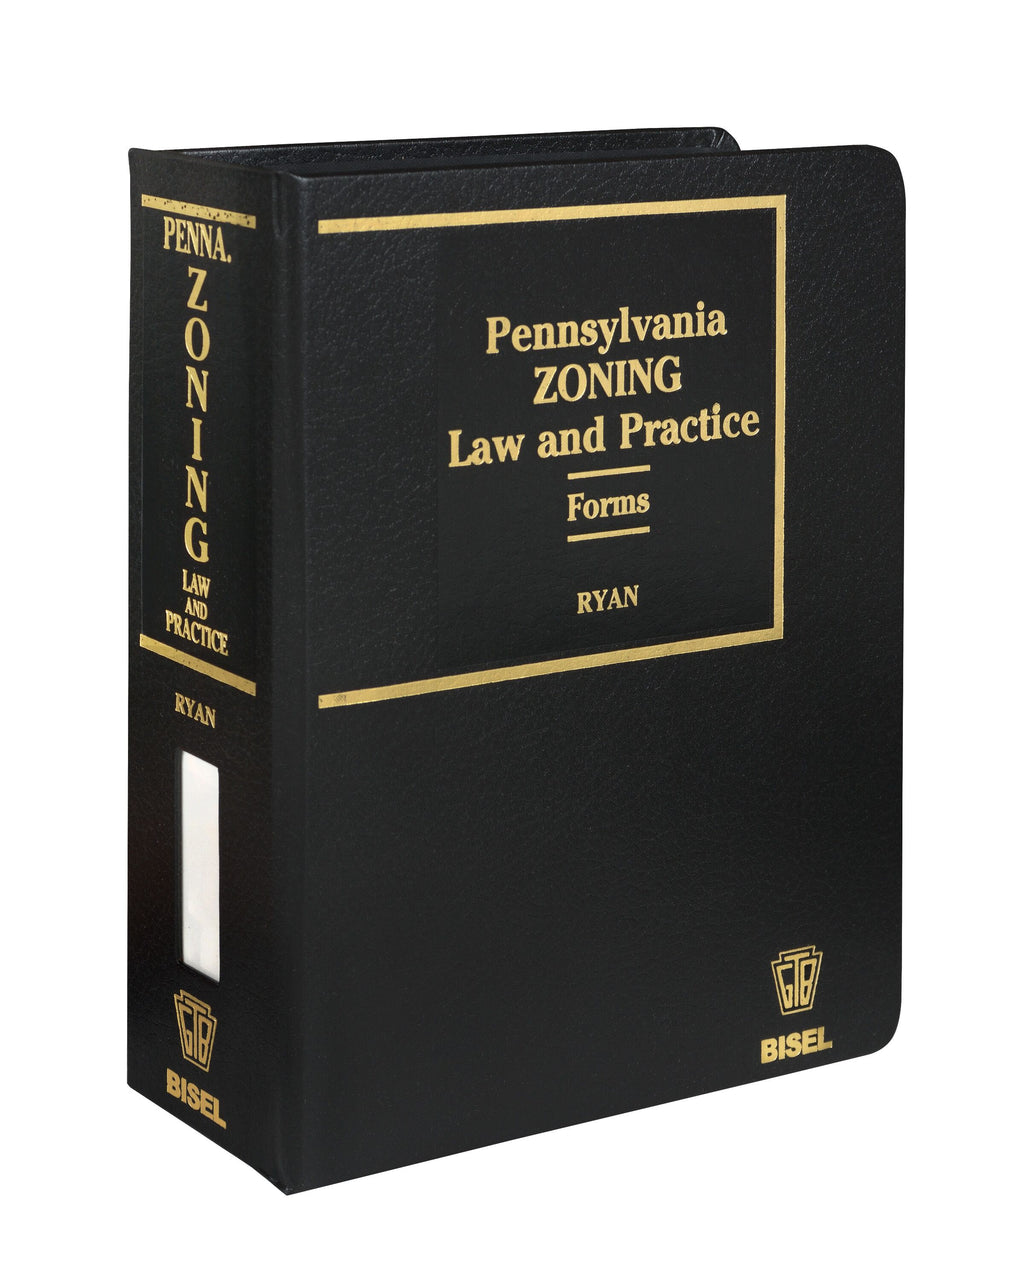 Pennsylvania Zoning Law & Practice - 2 Volumes-Print Version